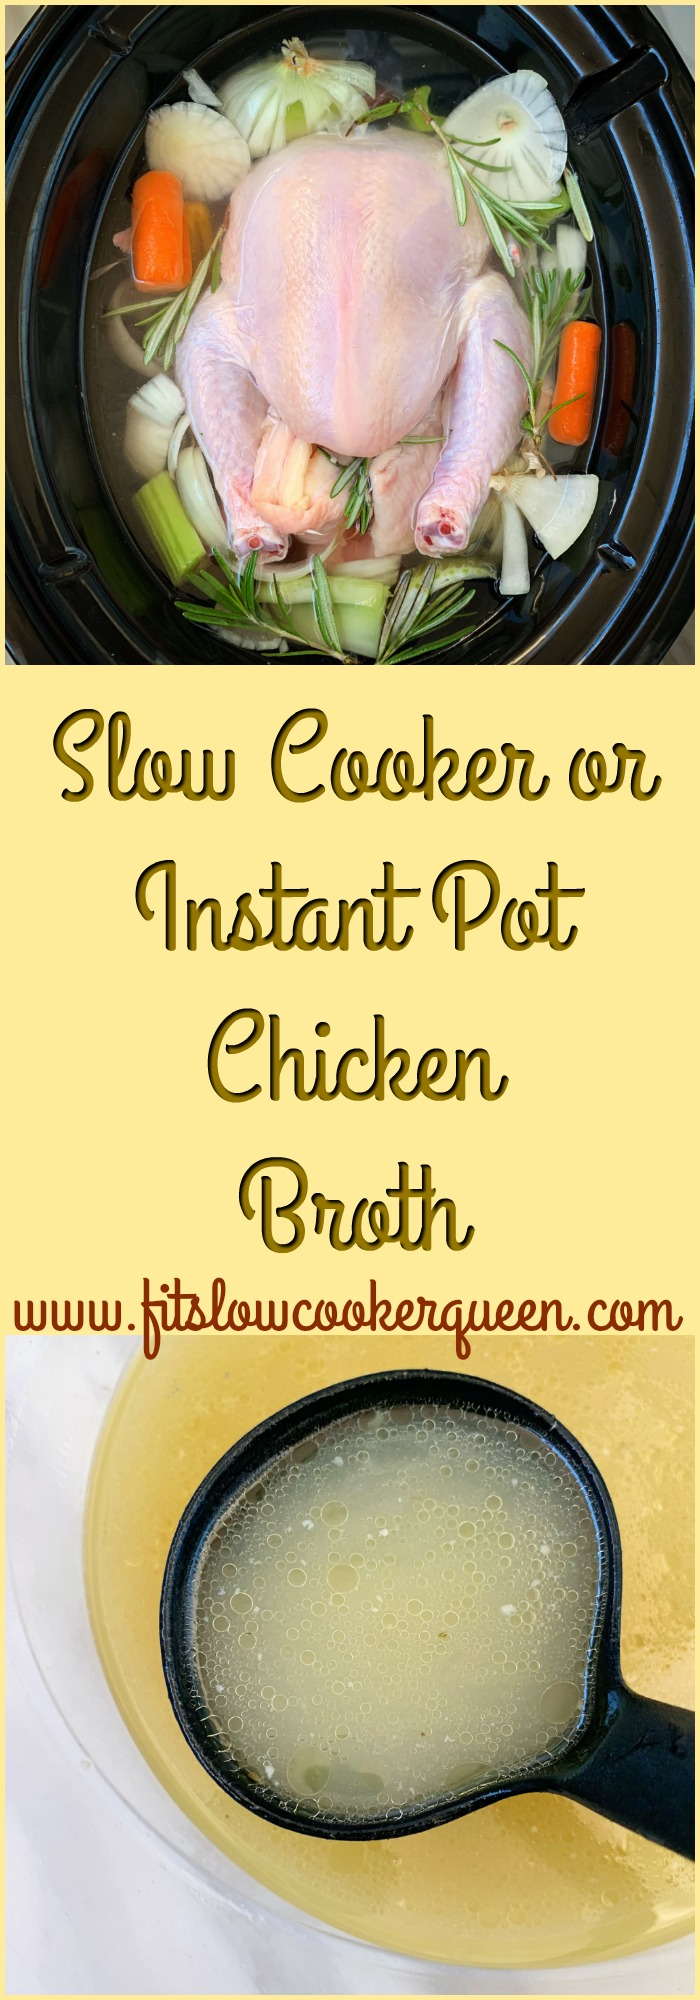 Slow Cooker/Instant Pot Chicken Broth